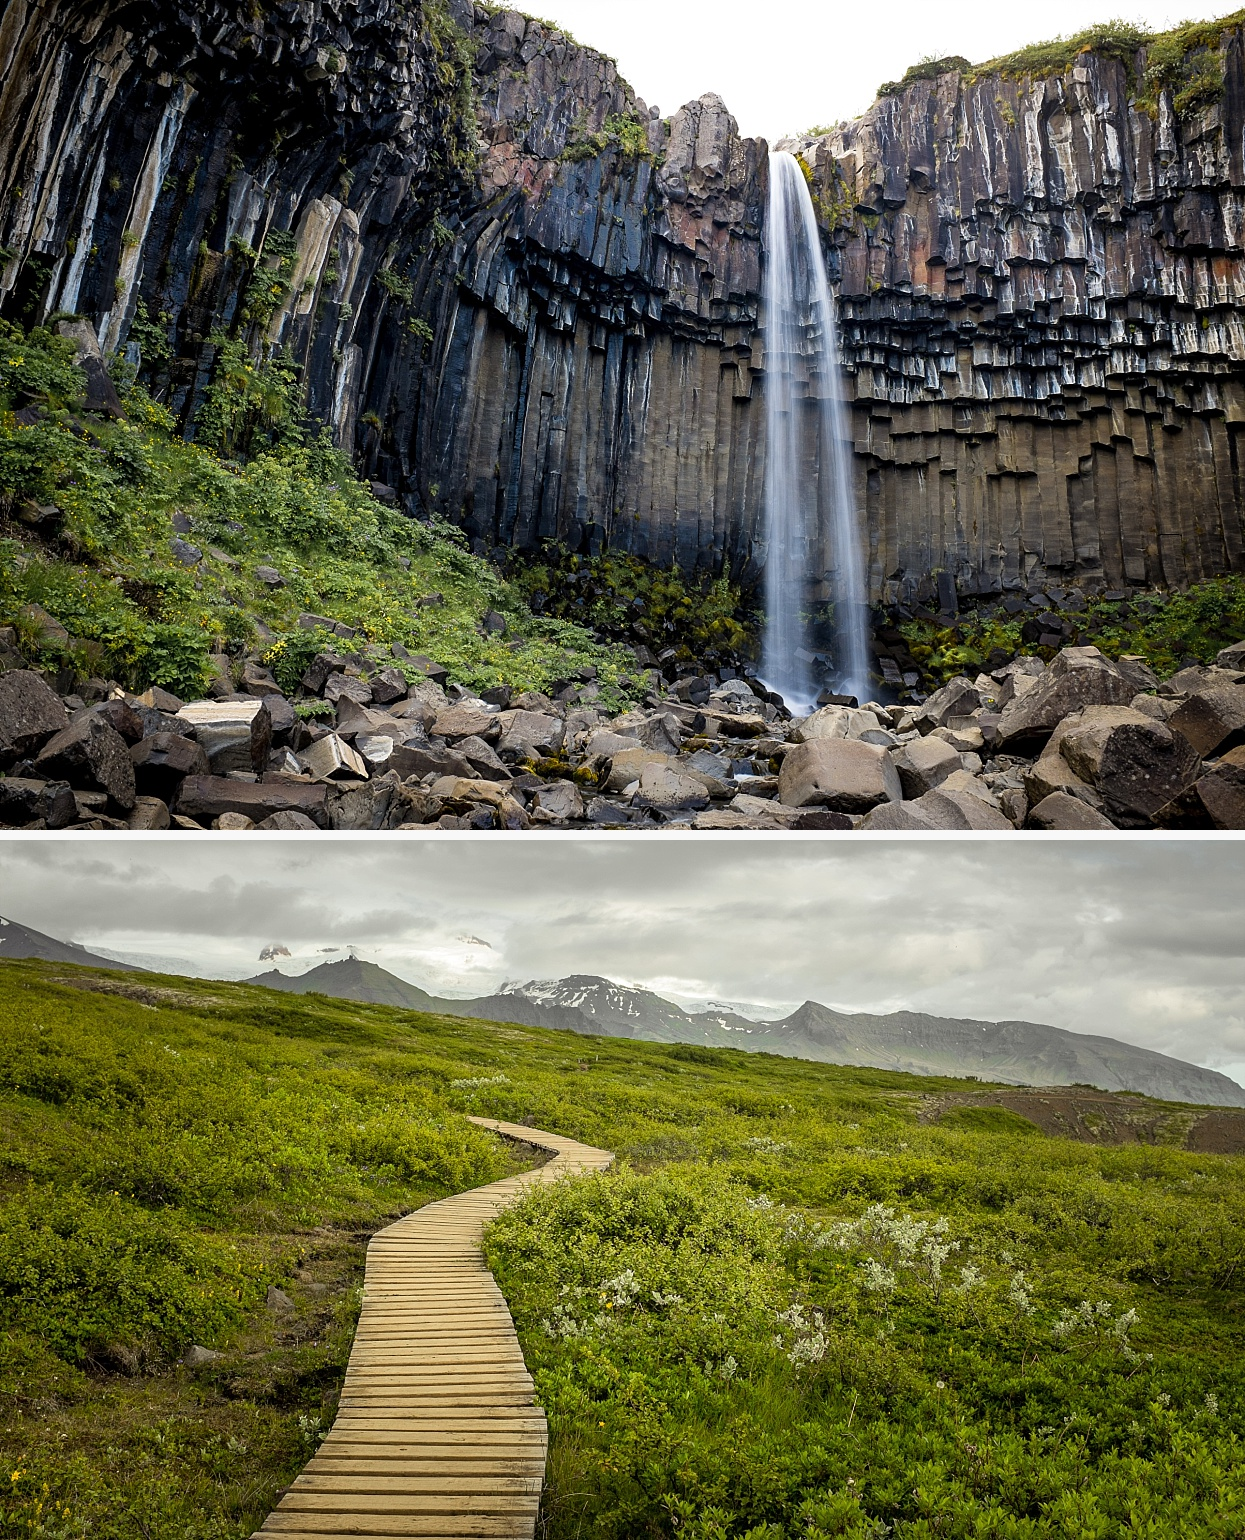 Svartifoss (Black Fall) is a waterfall in Skaftafell in Vatnajökull National Park in Iceland, and is one of the most popular sights in the park. It is surrounded by dark lava columns, which gave rise to its name. Other well-known columnar jointing formations are seen at the Giant's Causeway in Northern Ireland, Devil's Tower in Wyoming, USA and on the island of Staffa in Scotland. There are also similar formations throughout Iceland, including a small cave on the beach of Reynisdrangar. The base of this waterfall is noteworthy for its sharp rocks. New hexagonal column sections break off faster than the falling water wears down the edges. These basalt columns have provided inspiration for Icelandic architects, most visibly in the Hallgrímskirkja church in Reykjavík, and also the National Theatre.